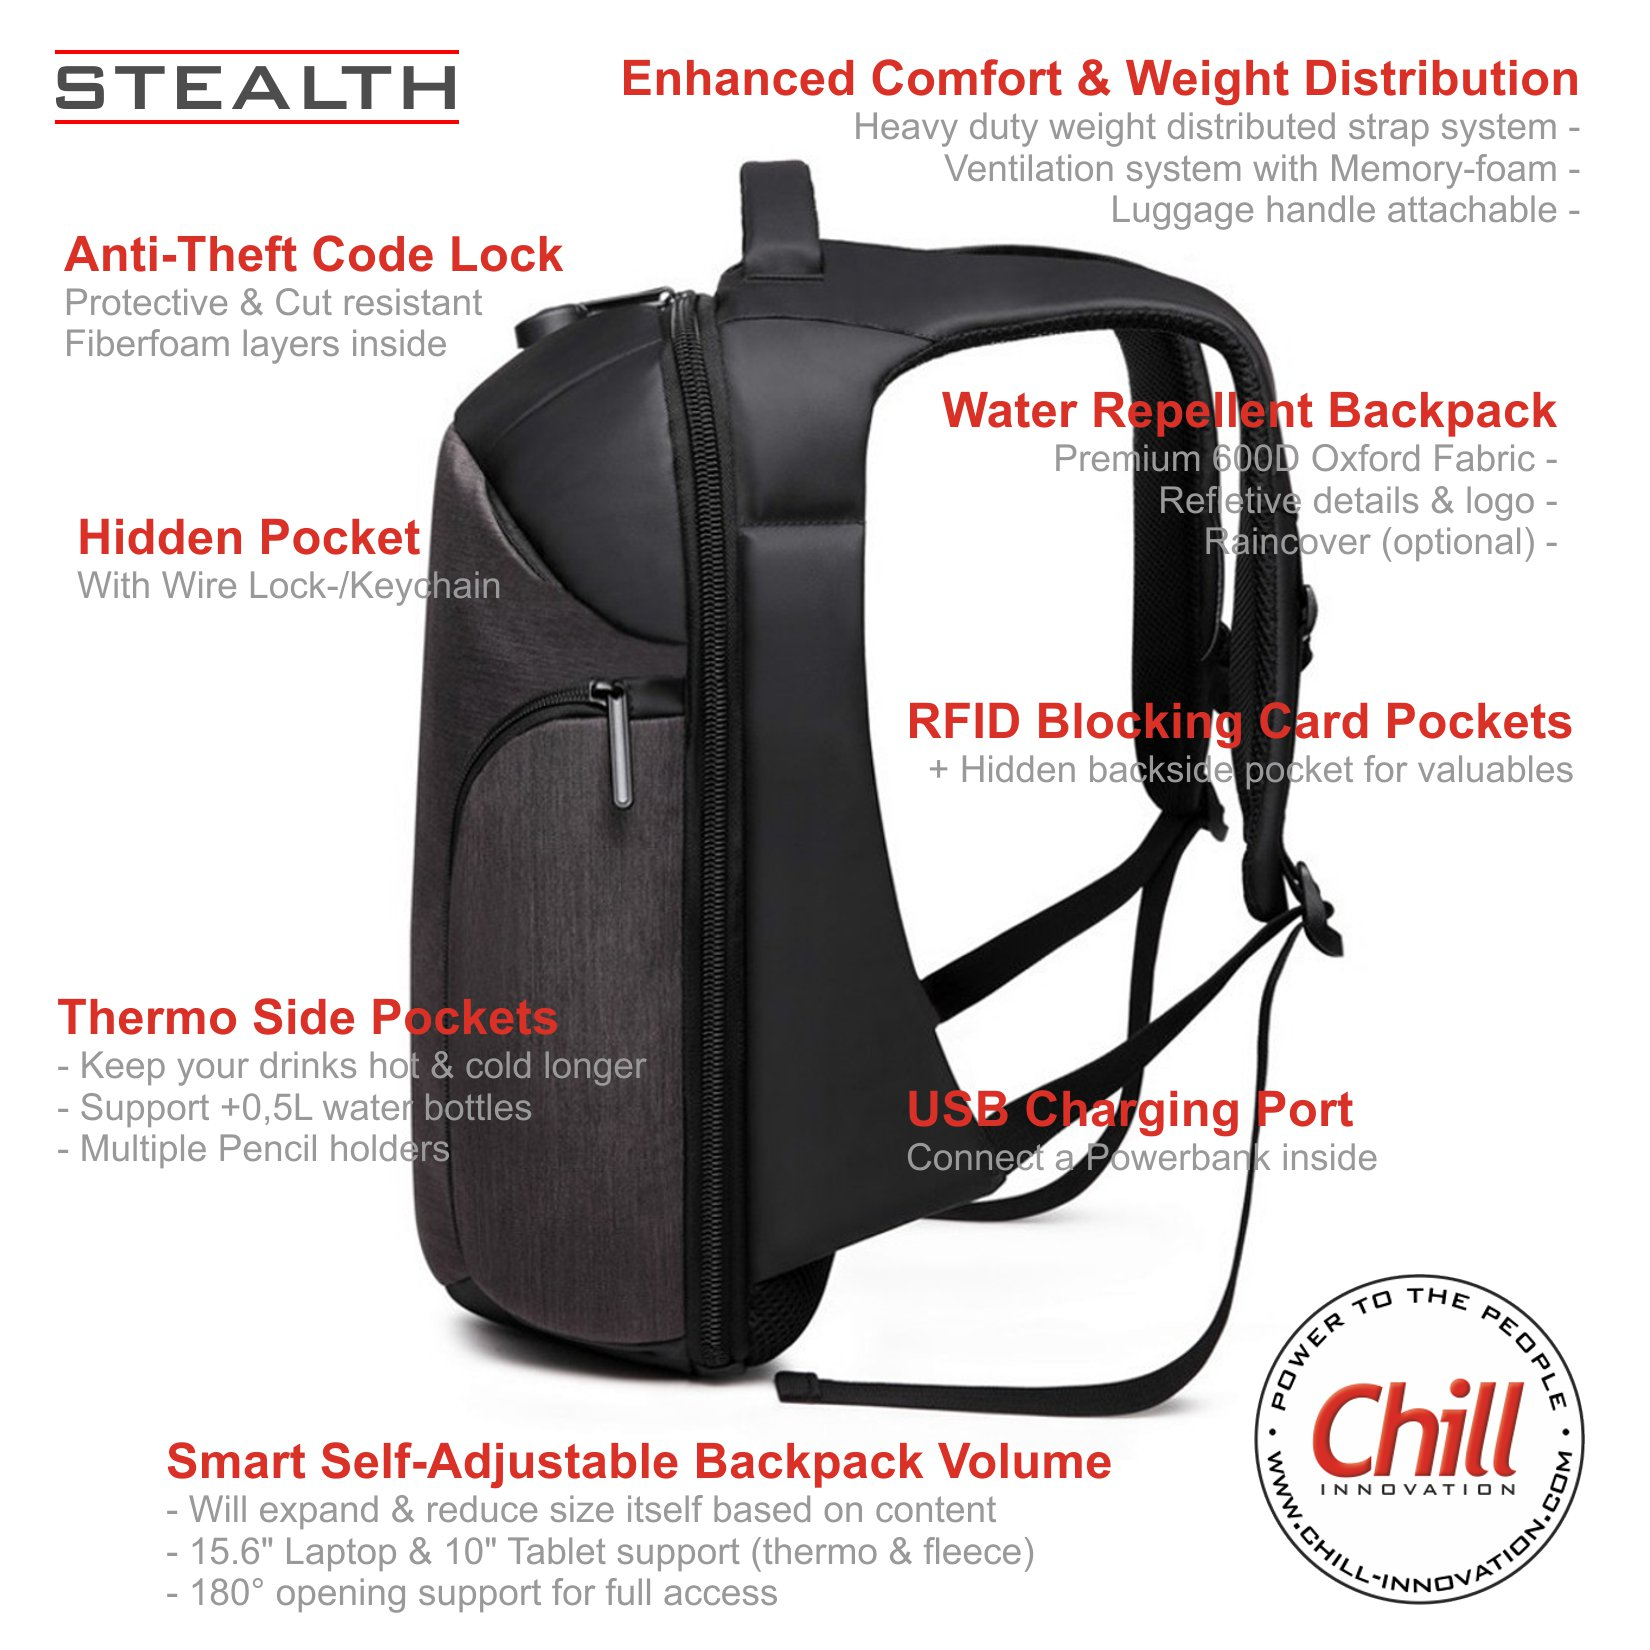 Chill Stealth Anti-theft Backpack Features